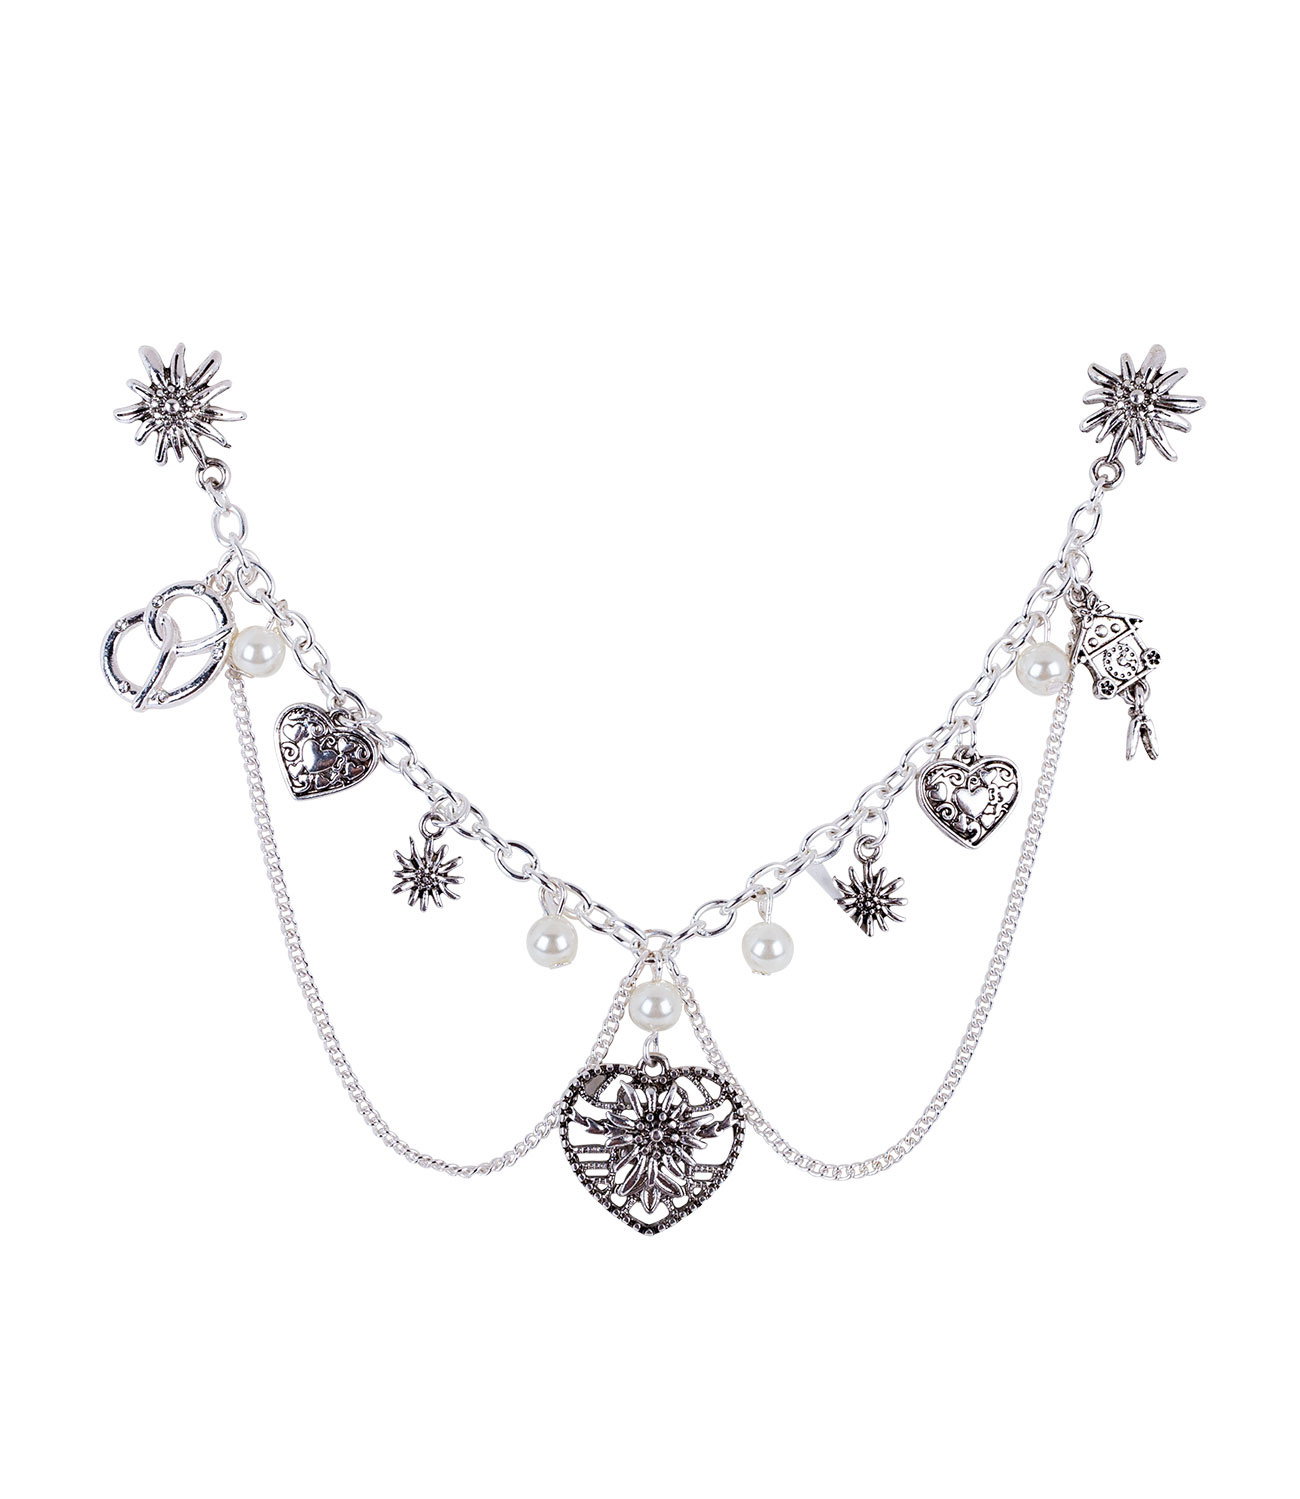 Kette mit Charms